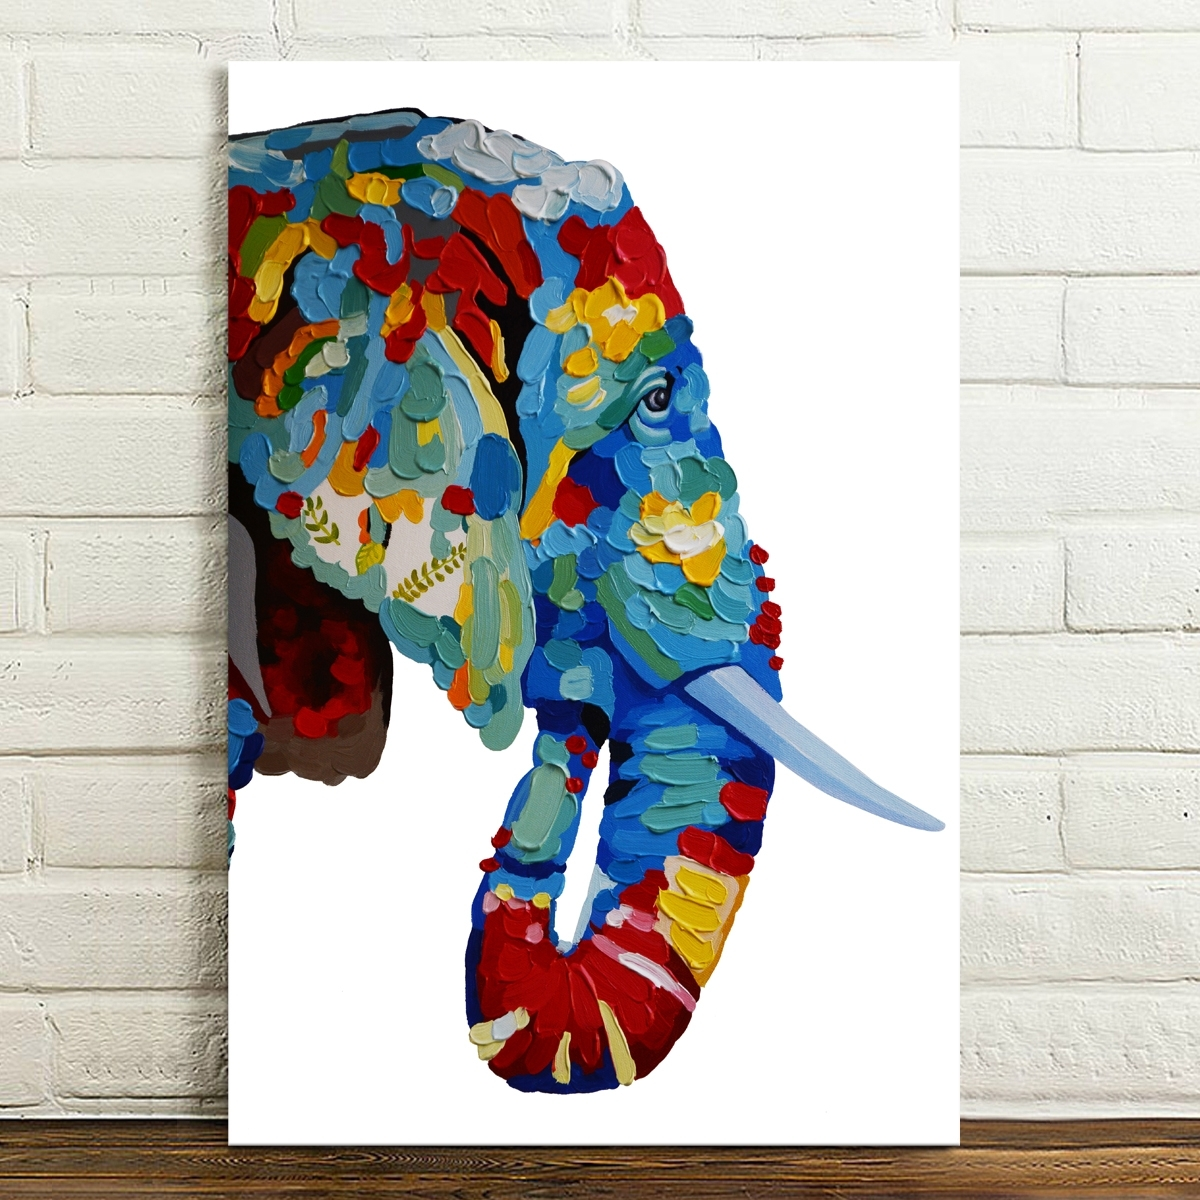 Abstract Canvas Prints Elephant Paintings Posters Home Decor Wall Pertaining To Most Recent Abstract Wall Art Posters (View 5 of 20)